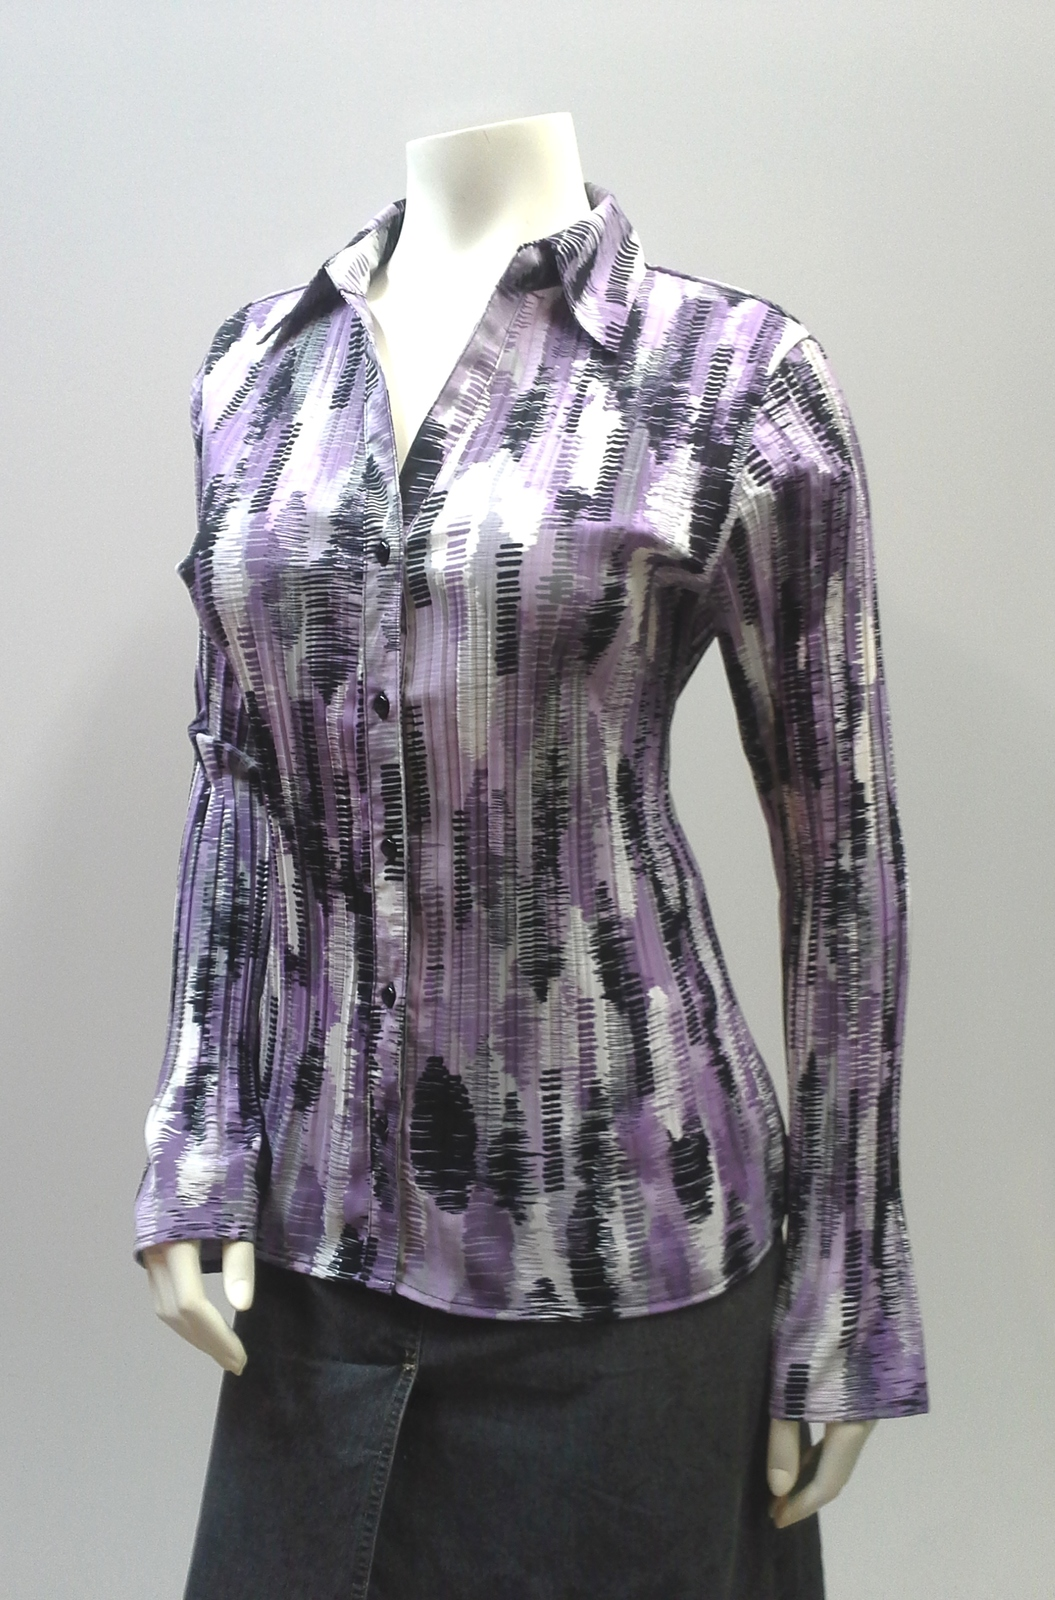 Primary image for Accordian Pleat Blouse with Bell Sleeves, Purple and Black Crinkle Pleated Shirt